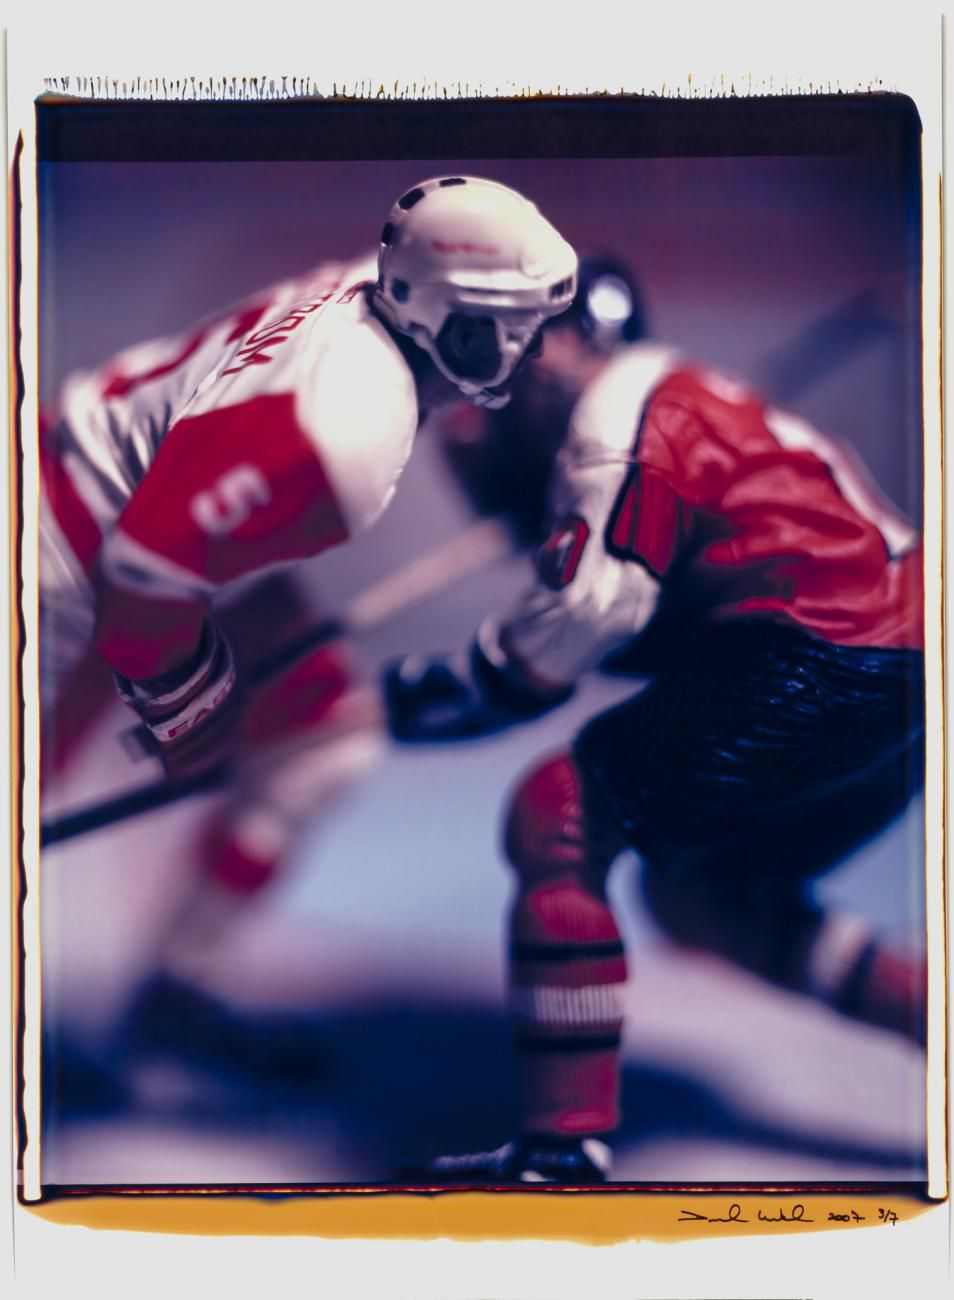 I photograph of hockey player figurines.